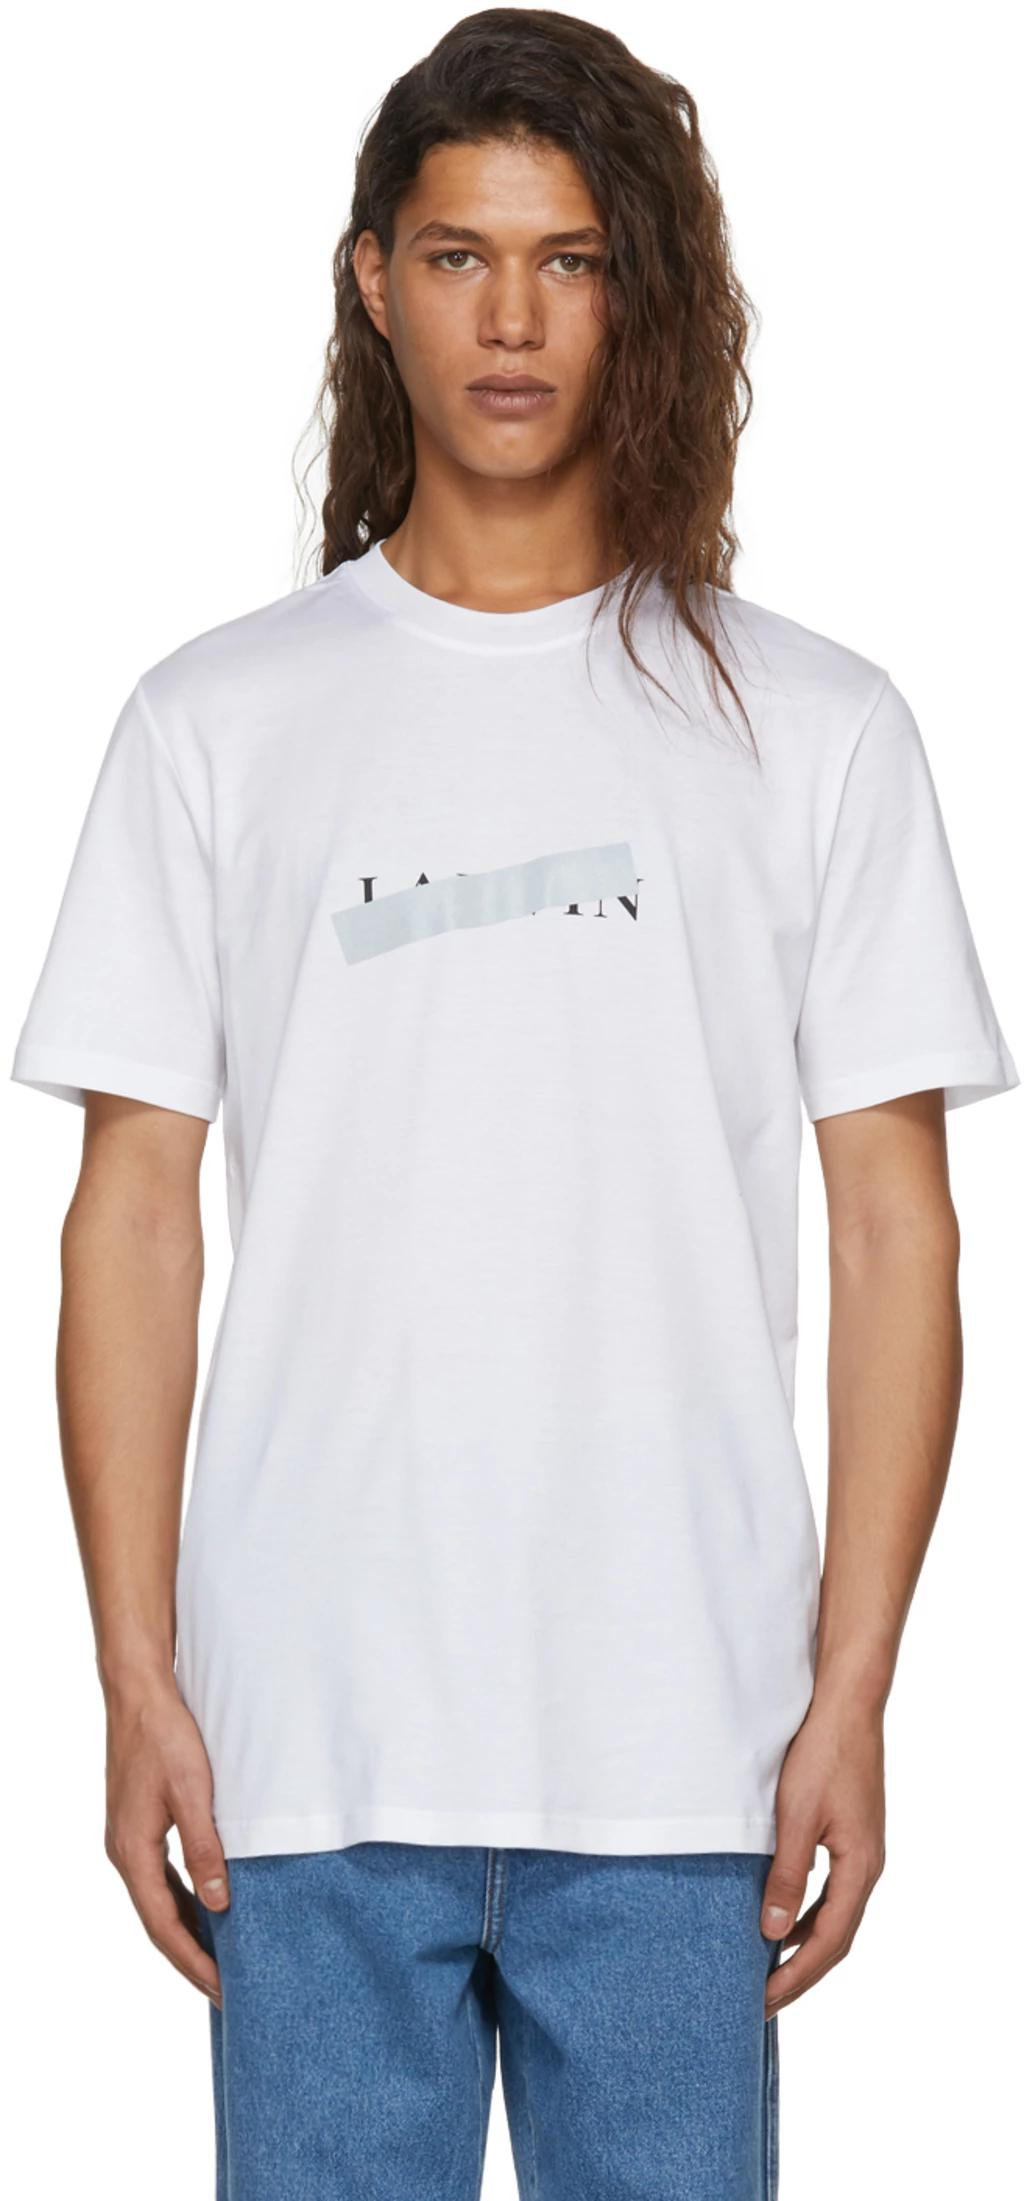 Lanvin - White Crossed Out Logo T-Shirt